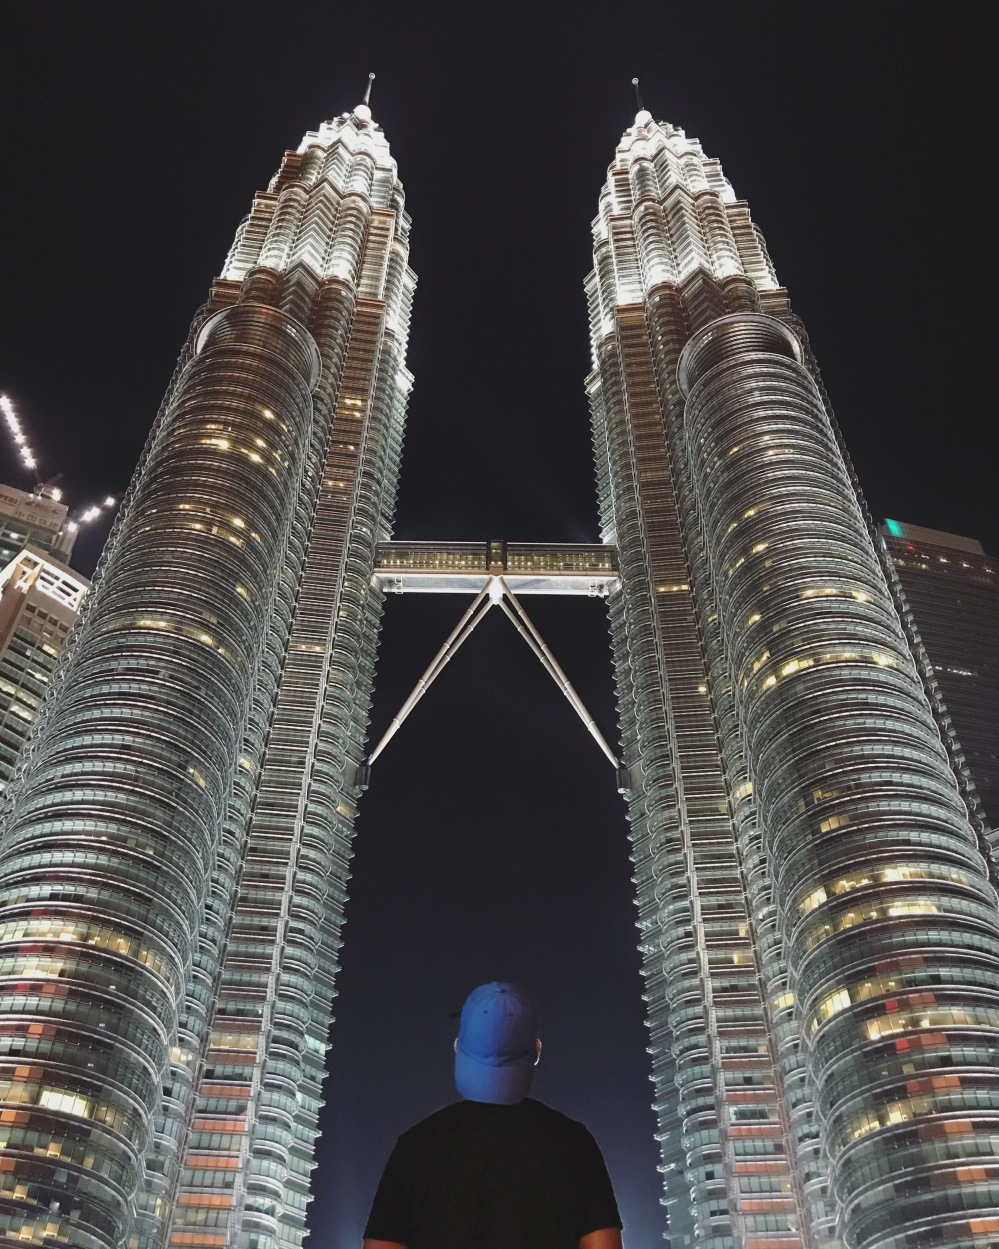 Awed by the amazing Petronas Twiin Towers